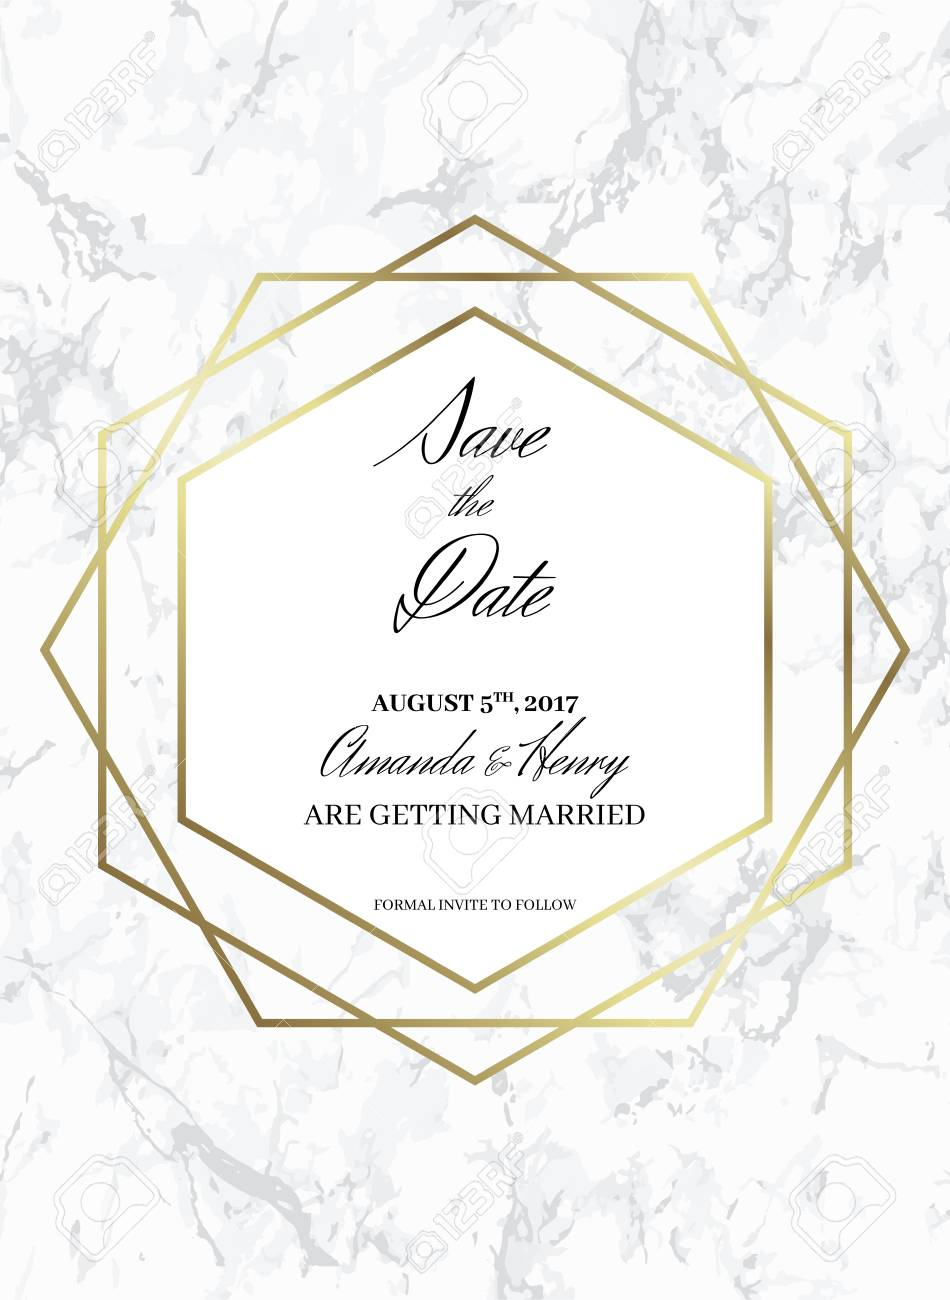 Save The Date Design Template Formal Invite To Follow White